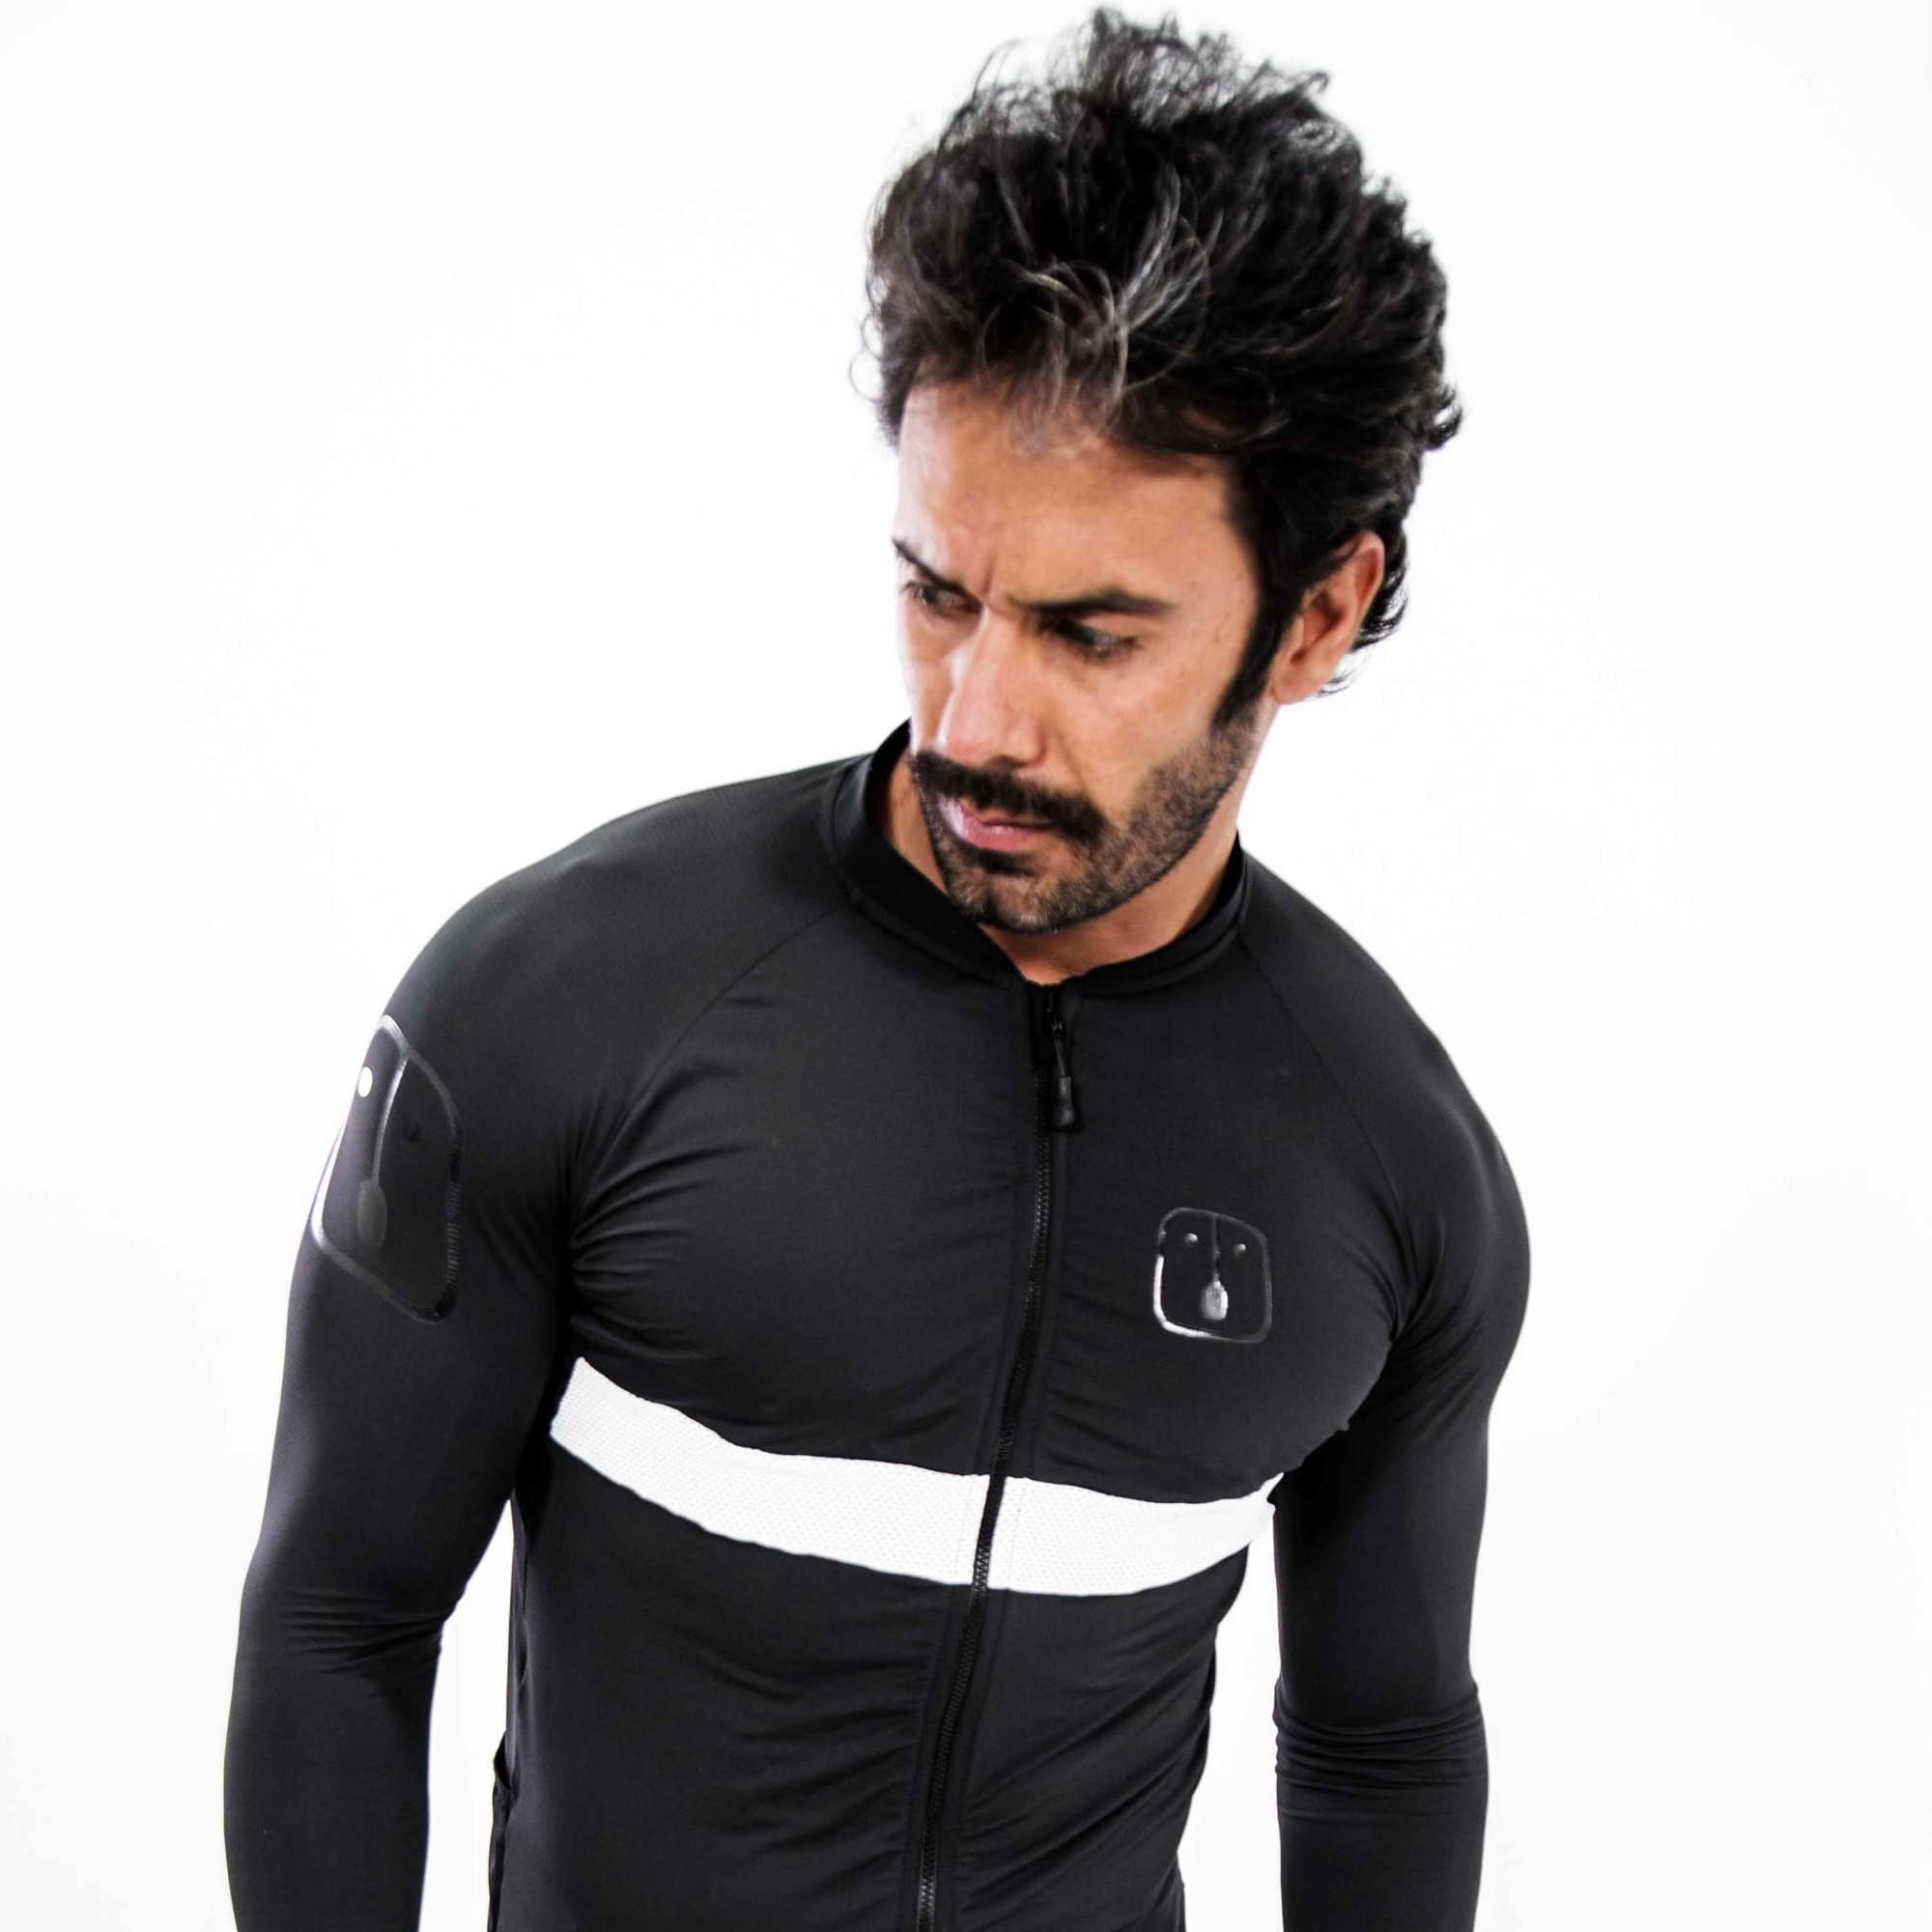 Camisa Ciclismo Aussie Full Dark Light